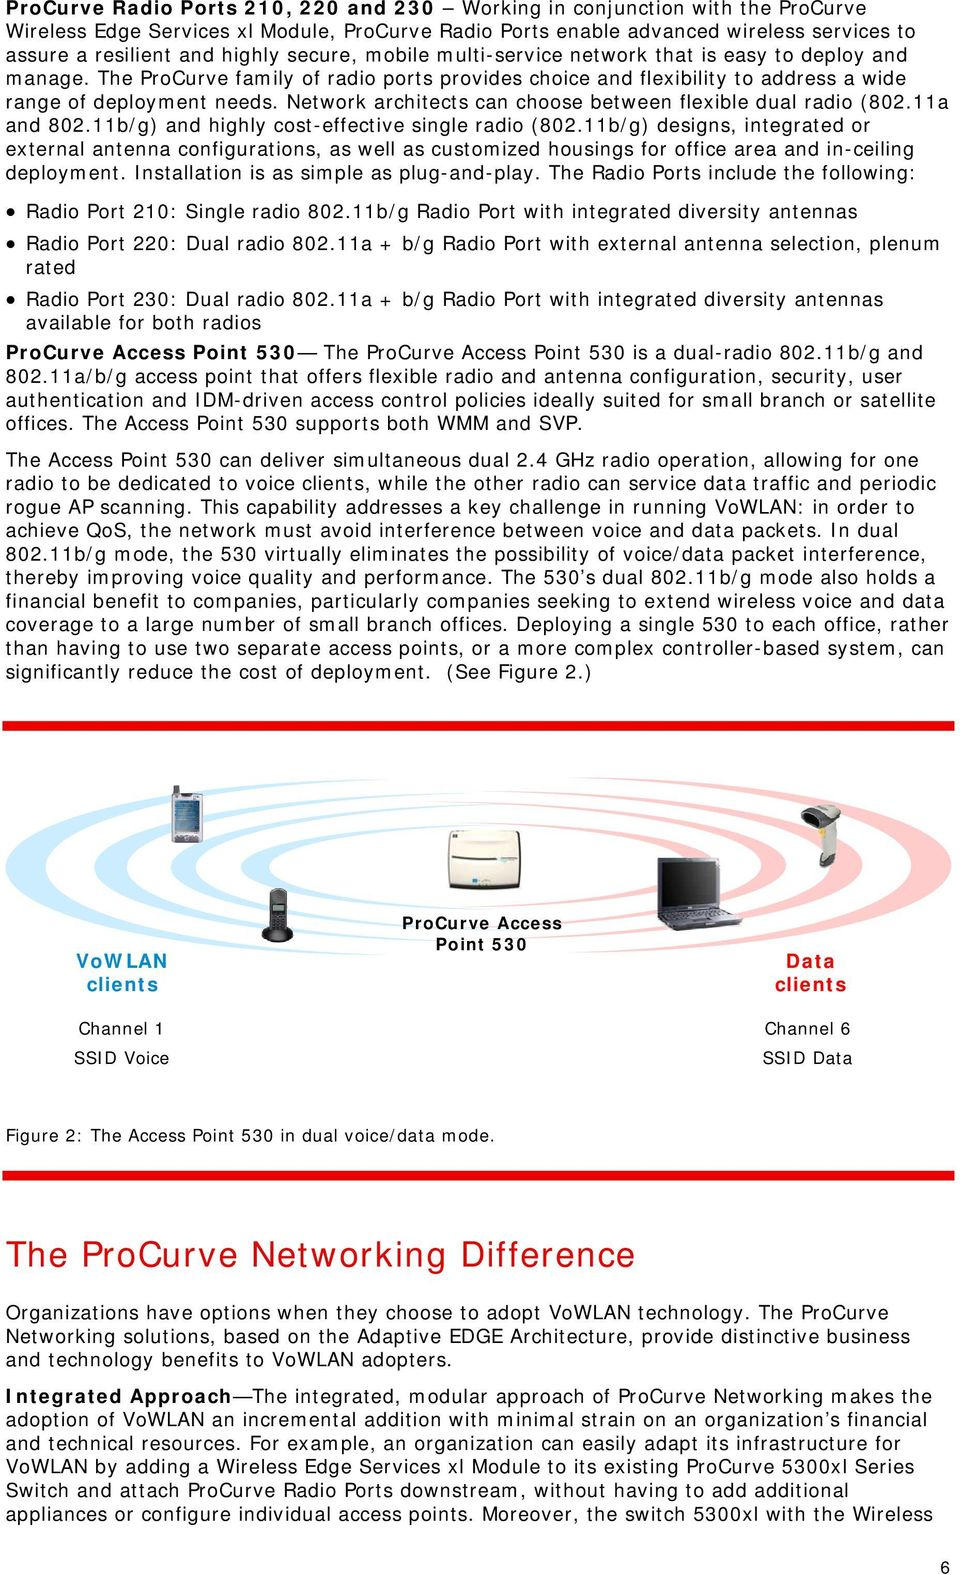 Network architects can choose between flexible dual radio (802.11a and 802.11b/g) and highly cost-effective single radio (802.